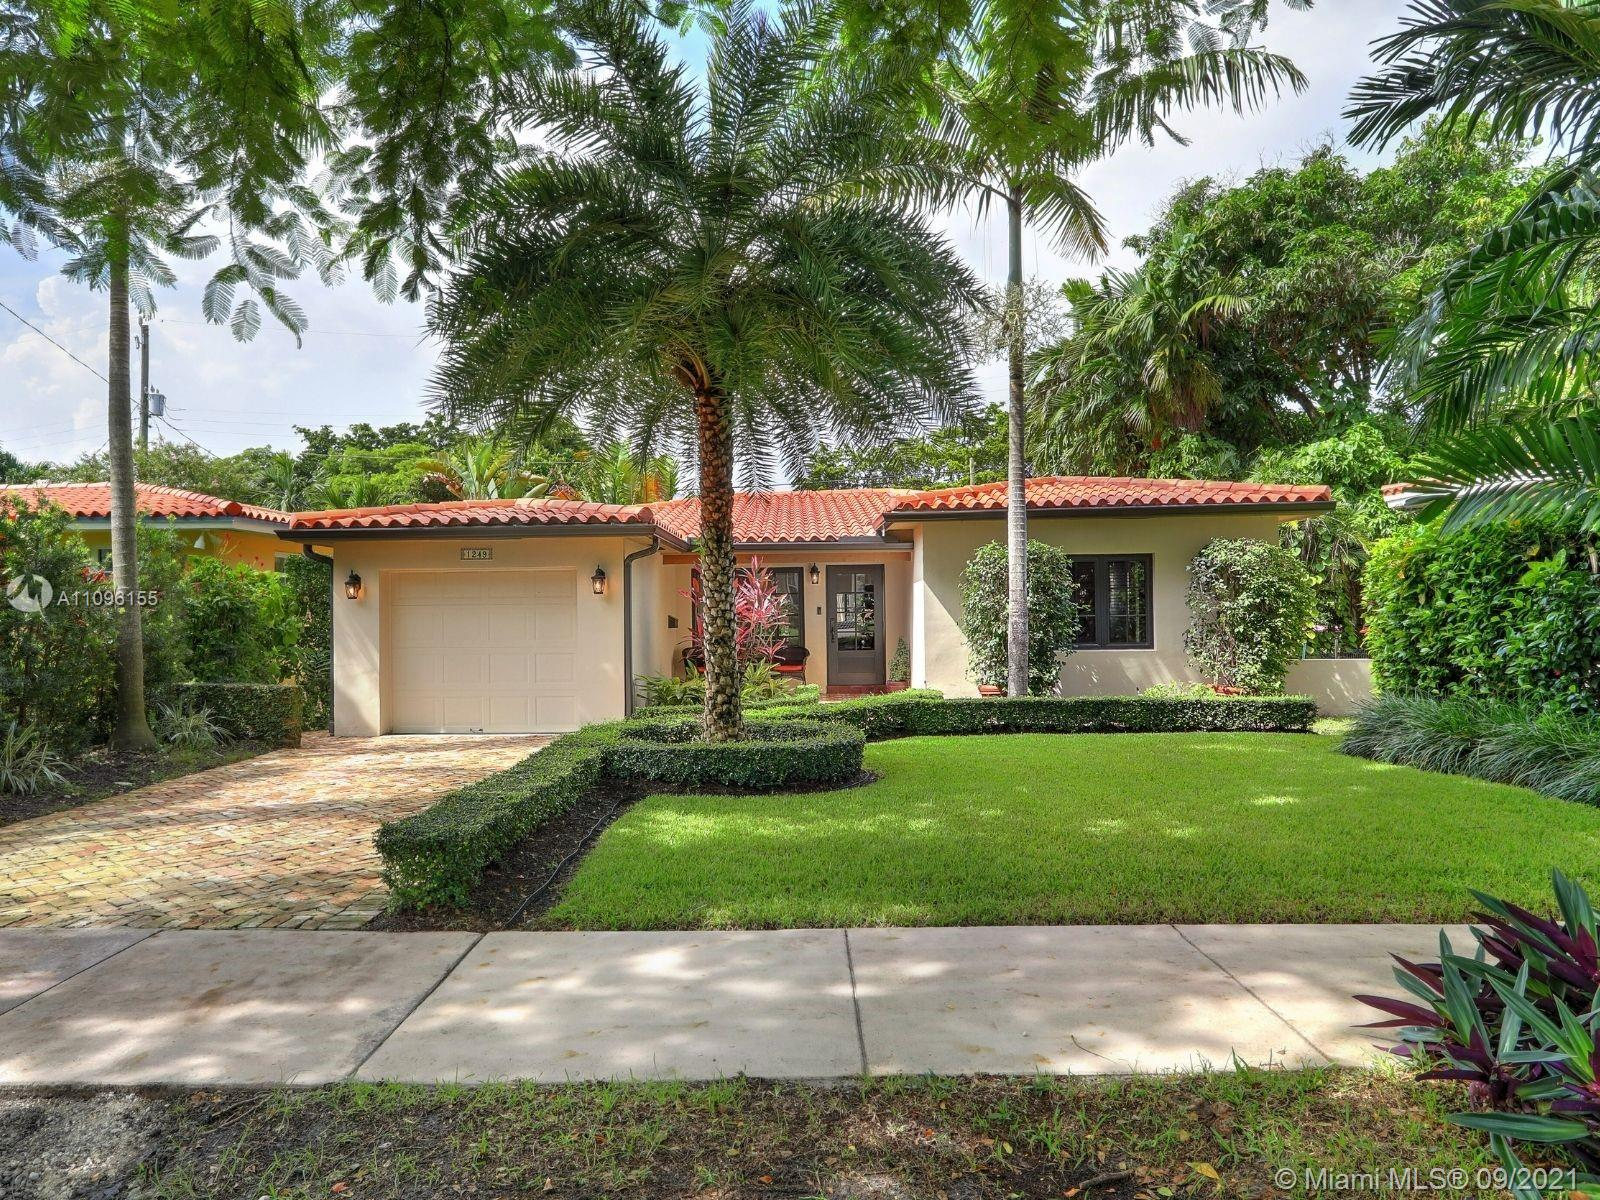 """Calling all those with discerning tastes and an appreciation for details. This charming Mid-century beauty is looking for a new owner to call her """"Home"""". Located on a lightly-traveled, Coral Gables tree-lined street, the meticulously-kept property features an enchanting entrance with a Chicago brick-paved walkway, an inviting front porch with handmade Cuban tile and tongue-n-groove ceilings, a great open floor plan with 1,448 sq ft, 3 beds and 2 baths, bright social areas with large window openings, 1-car garage, and too many updates to list. Come for the Italian tile flooring, recessed lighting, open kitchen, and exquisitely updated baths. Stay for the upgraded electrical and plumbing, neatly-manicured landscaping, impact-resistant windows and doors, and more! Call us to see it today."""